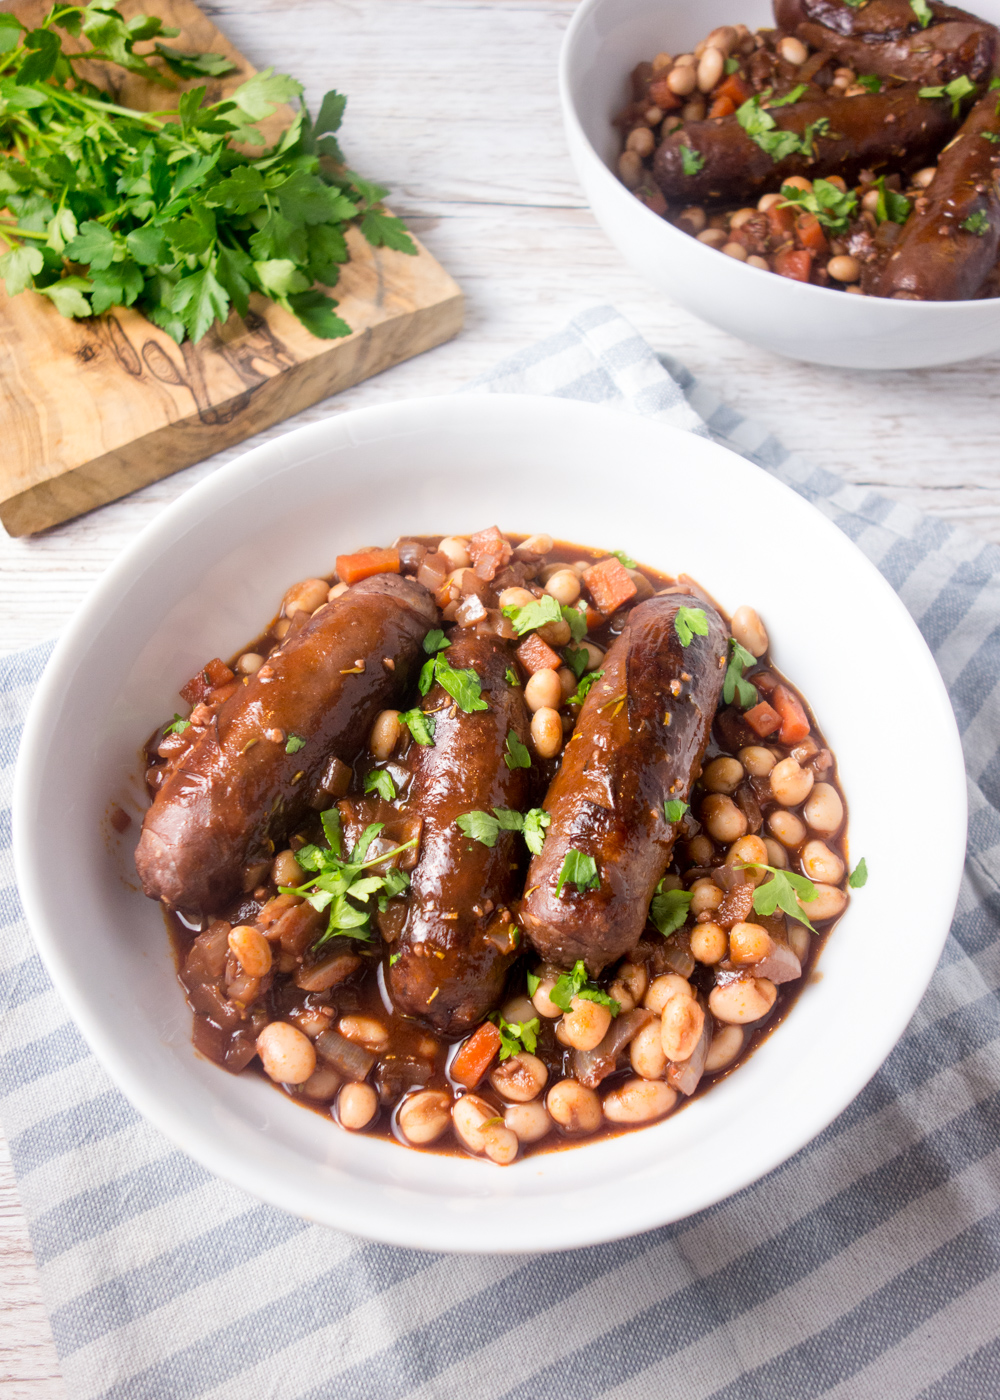 Vension Sausage Bean Casserole: A hearty, comforting recipe of venison sausages in a rich red wine gravy that only takes 20 minutes to cook.